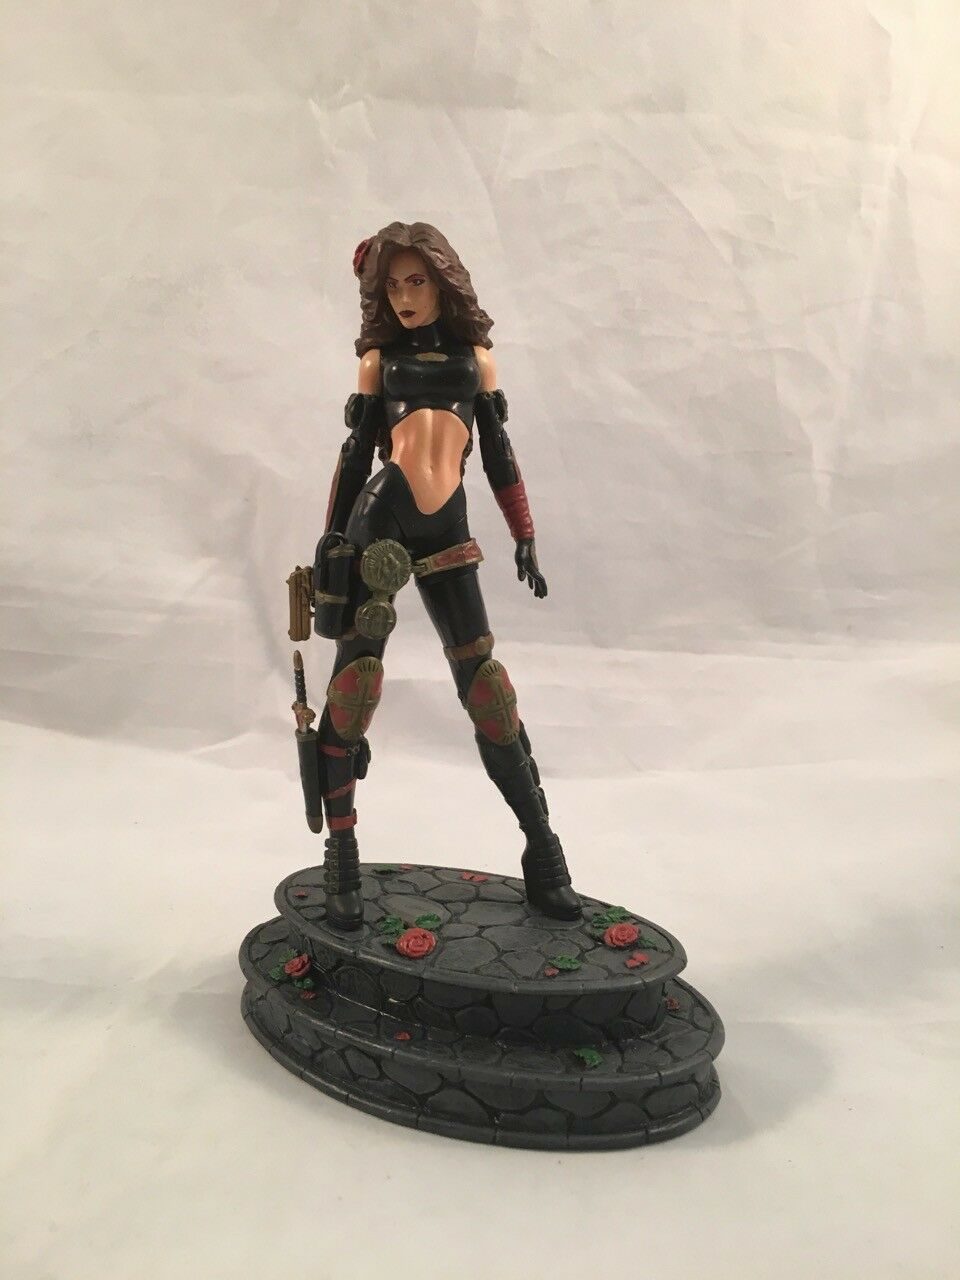 Female Woman Action Figure with gun and knife 6  Action Figurine on pinks Stand